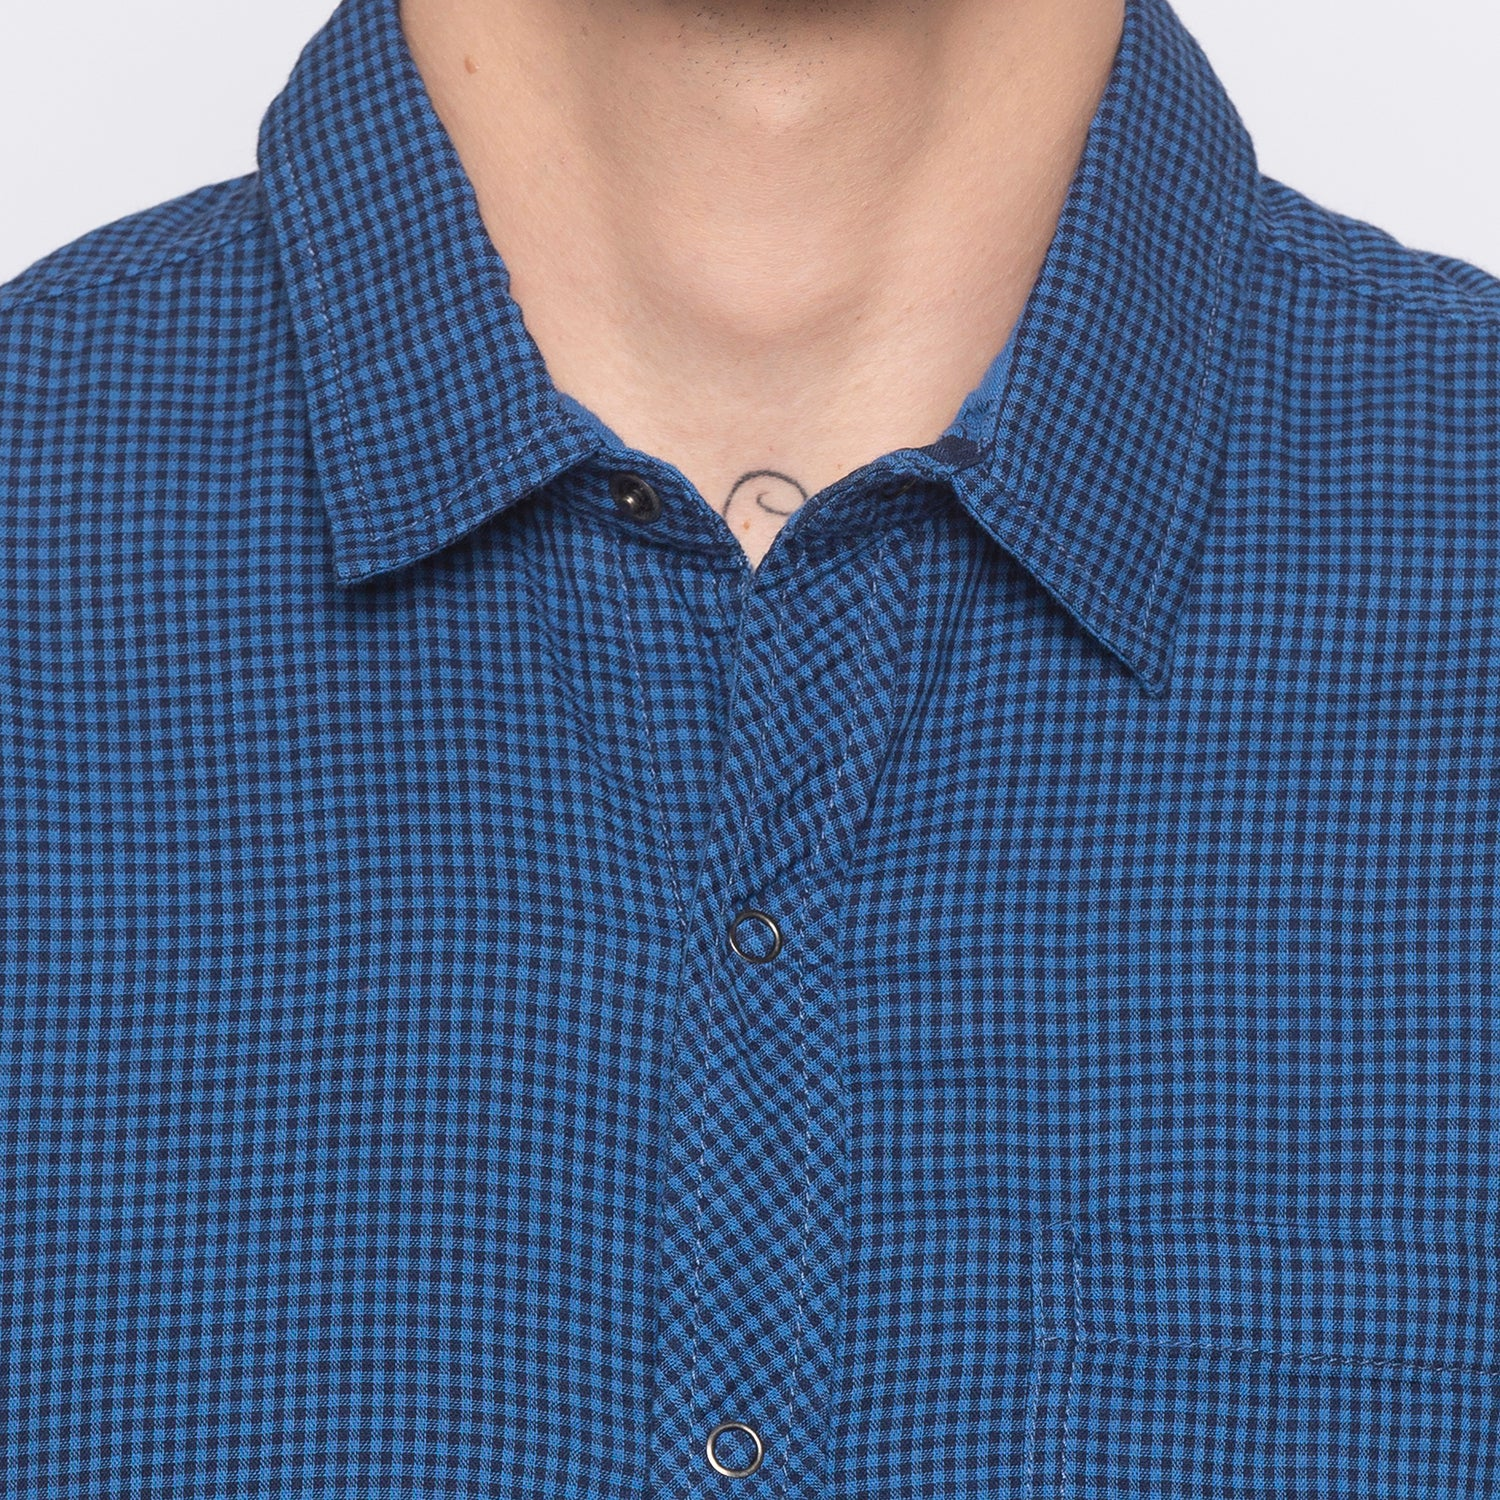 Window Pane Checked Blue Shirt-5